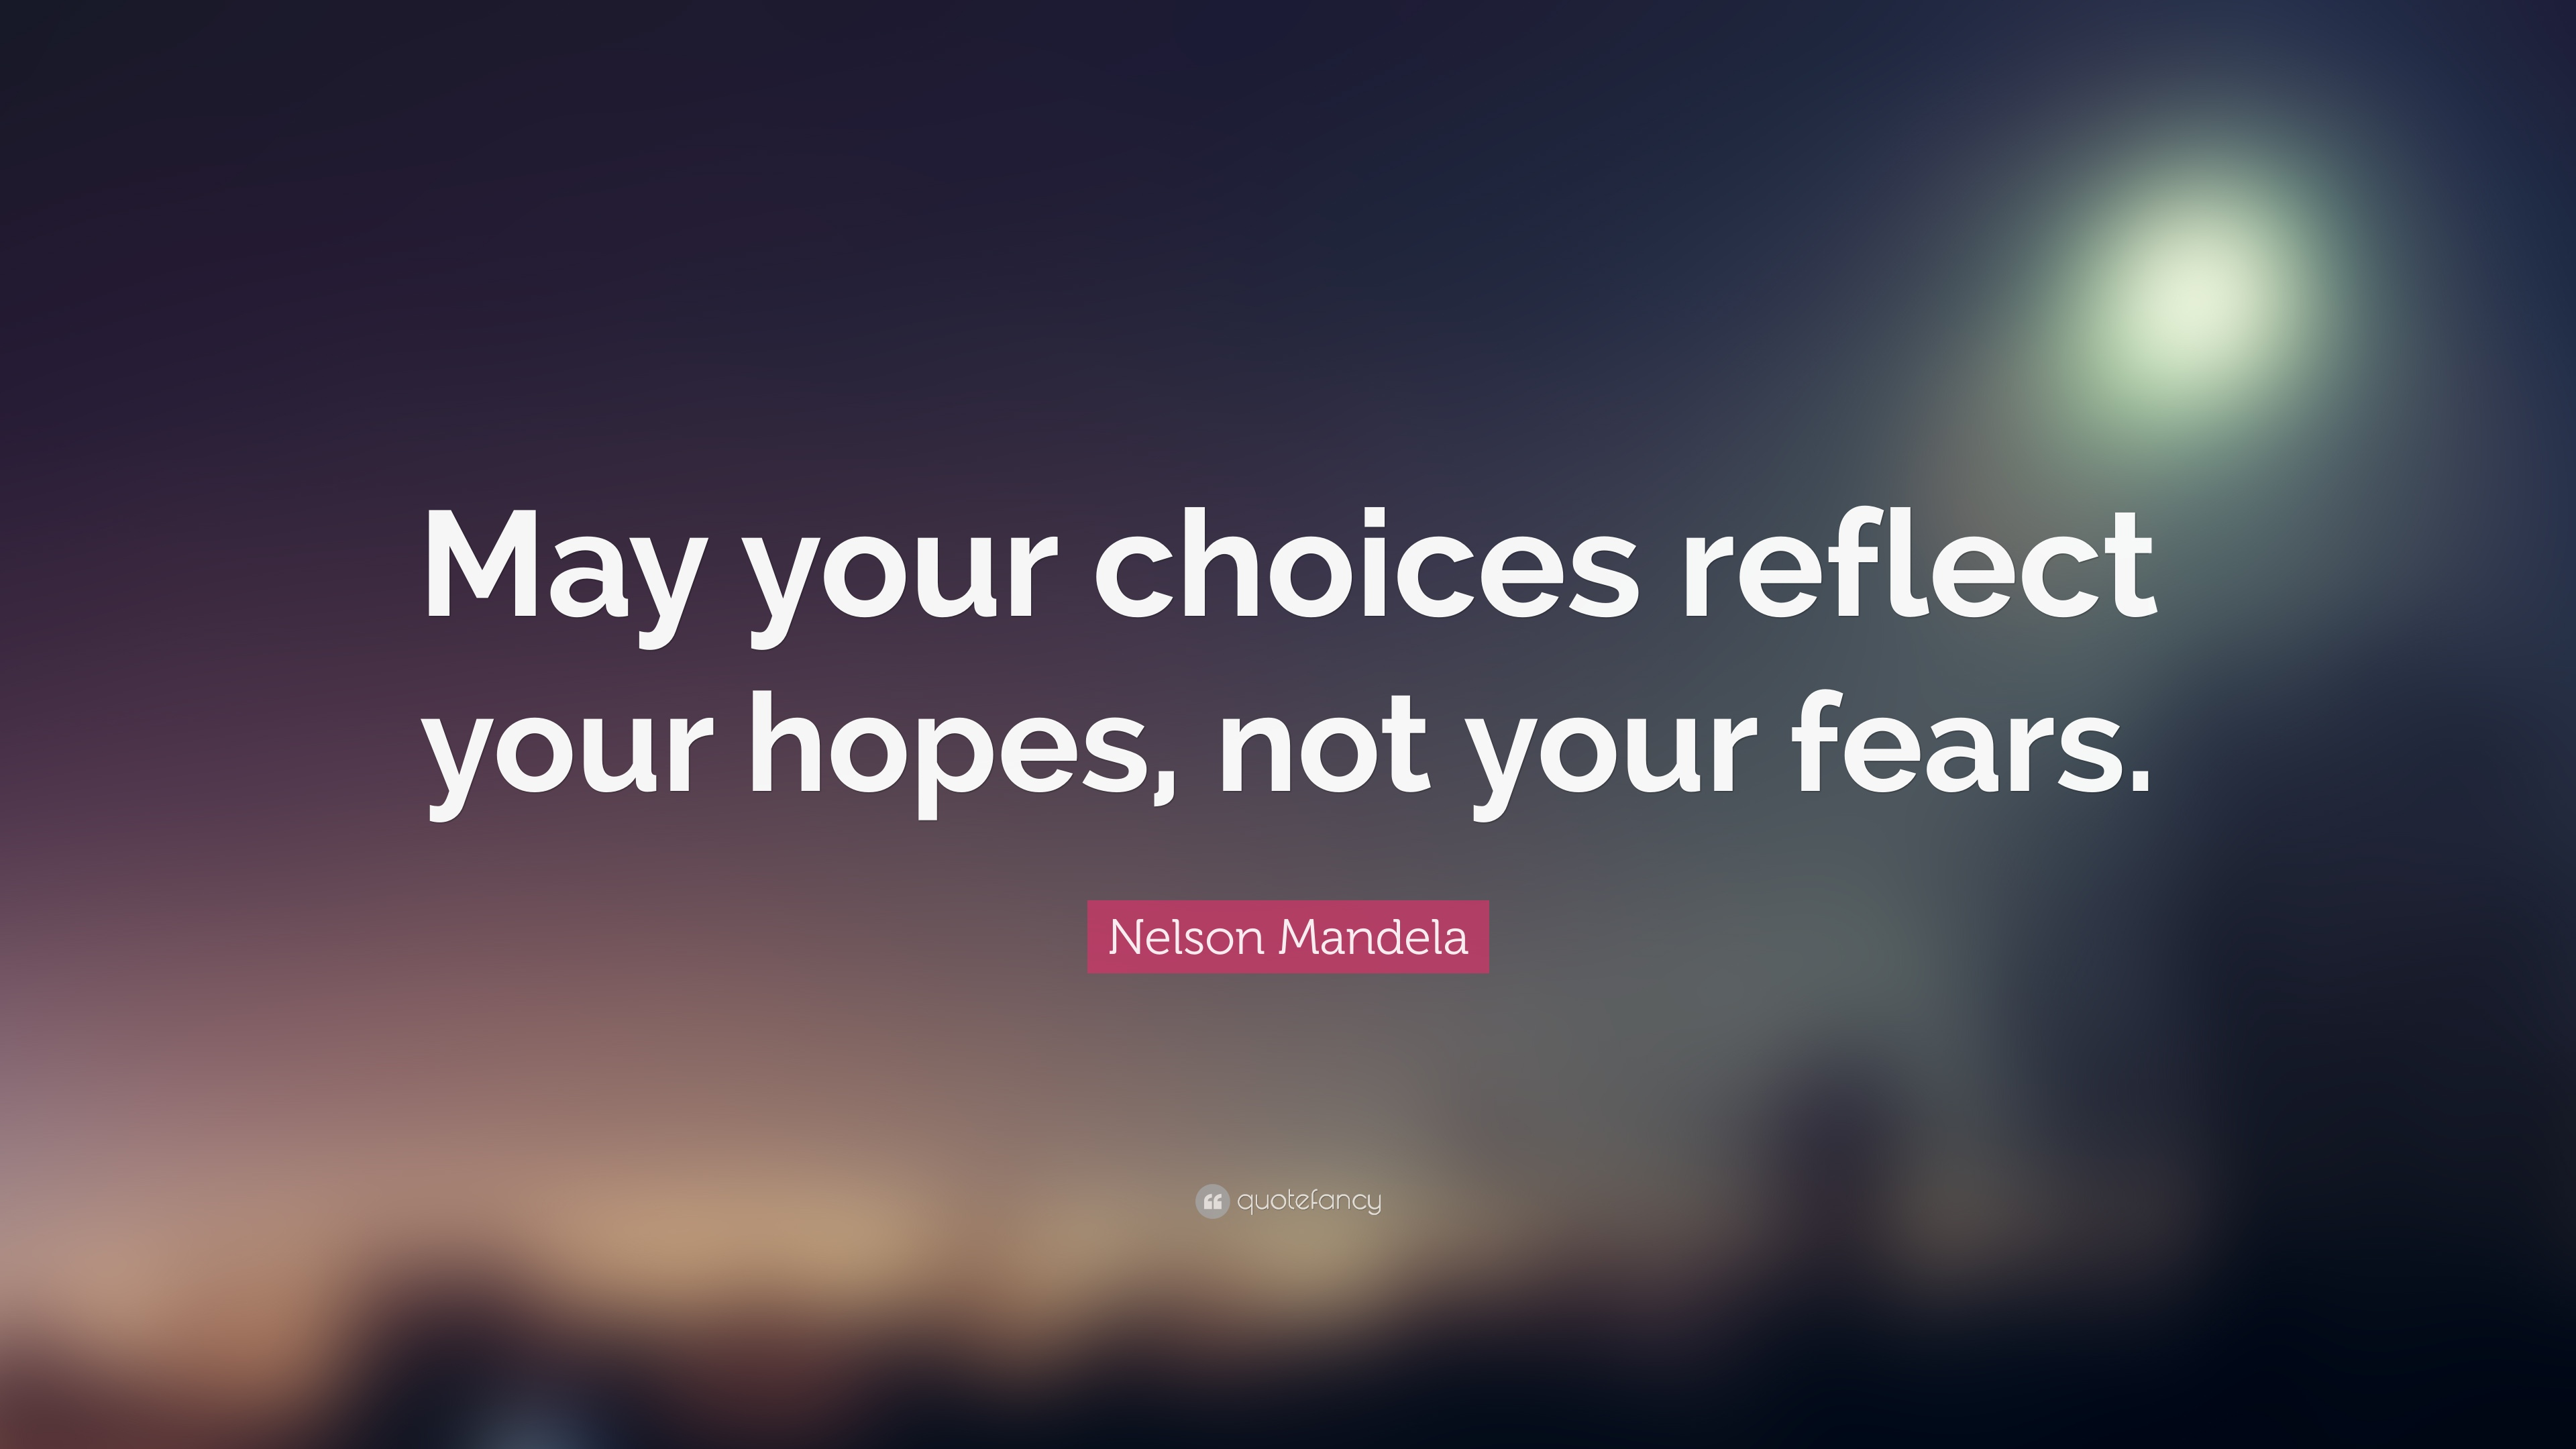 Nelson Mandela Quote May Your Choices Reflect Your Hopes Not Your Fears 23 Wallpapers